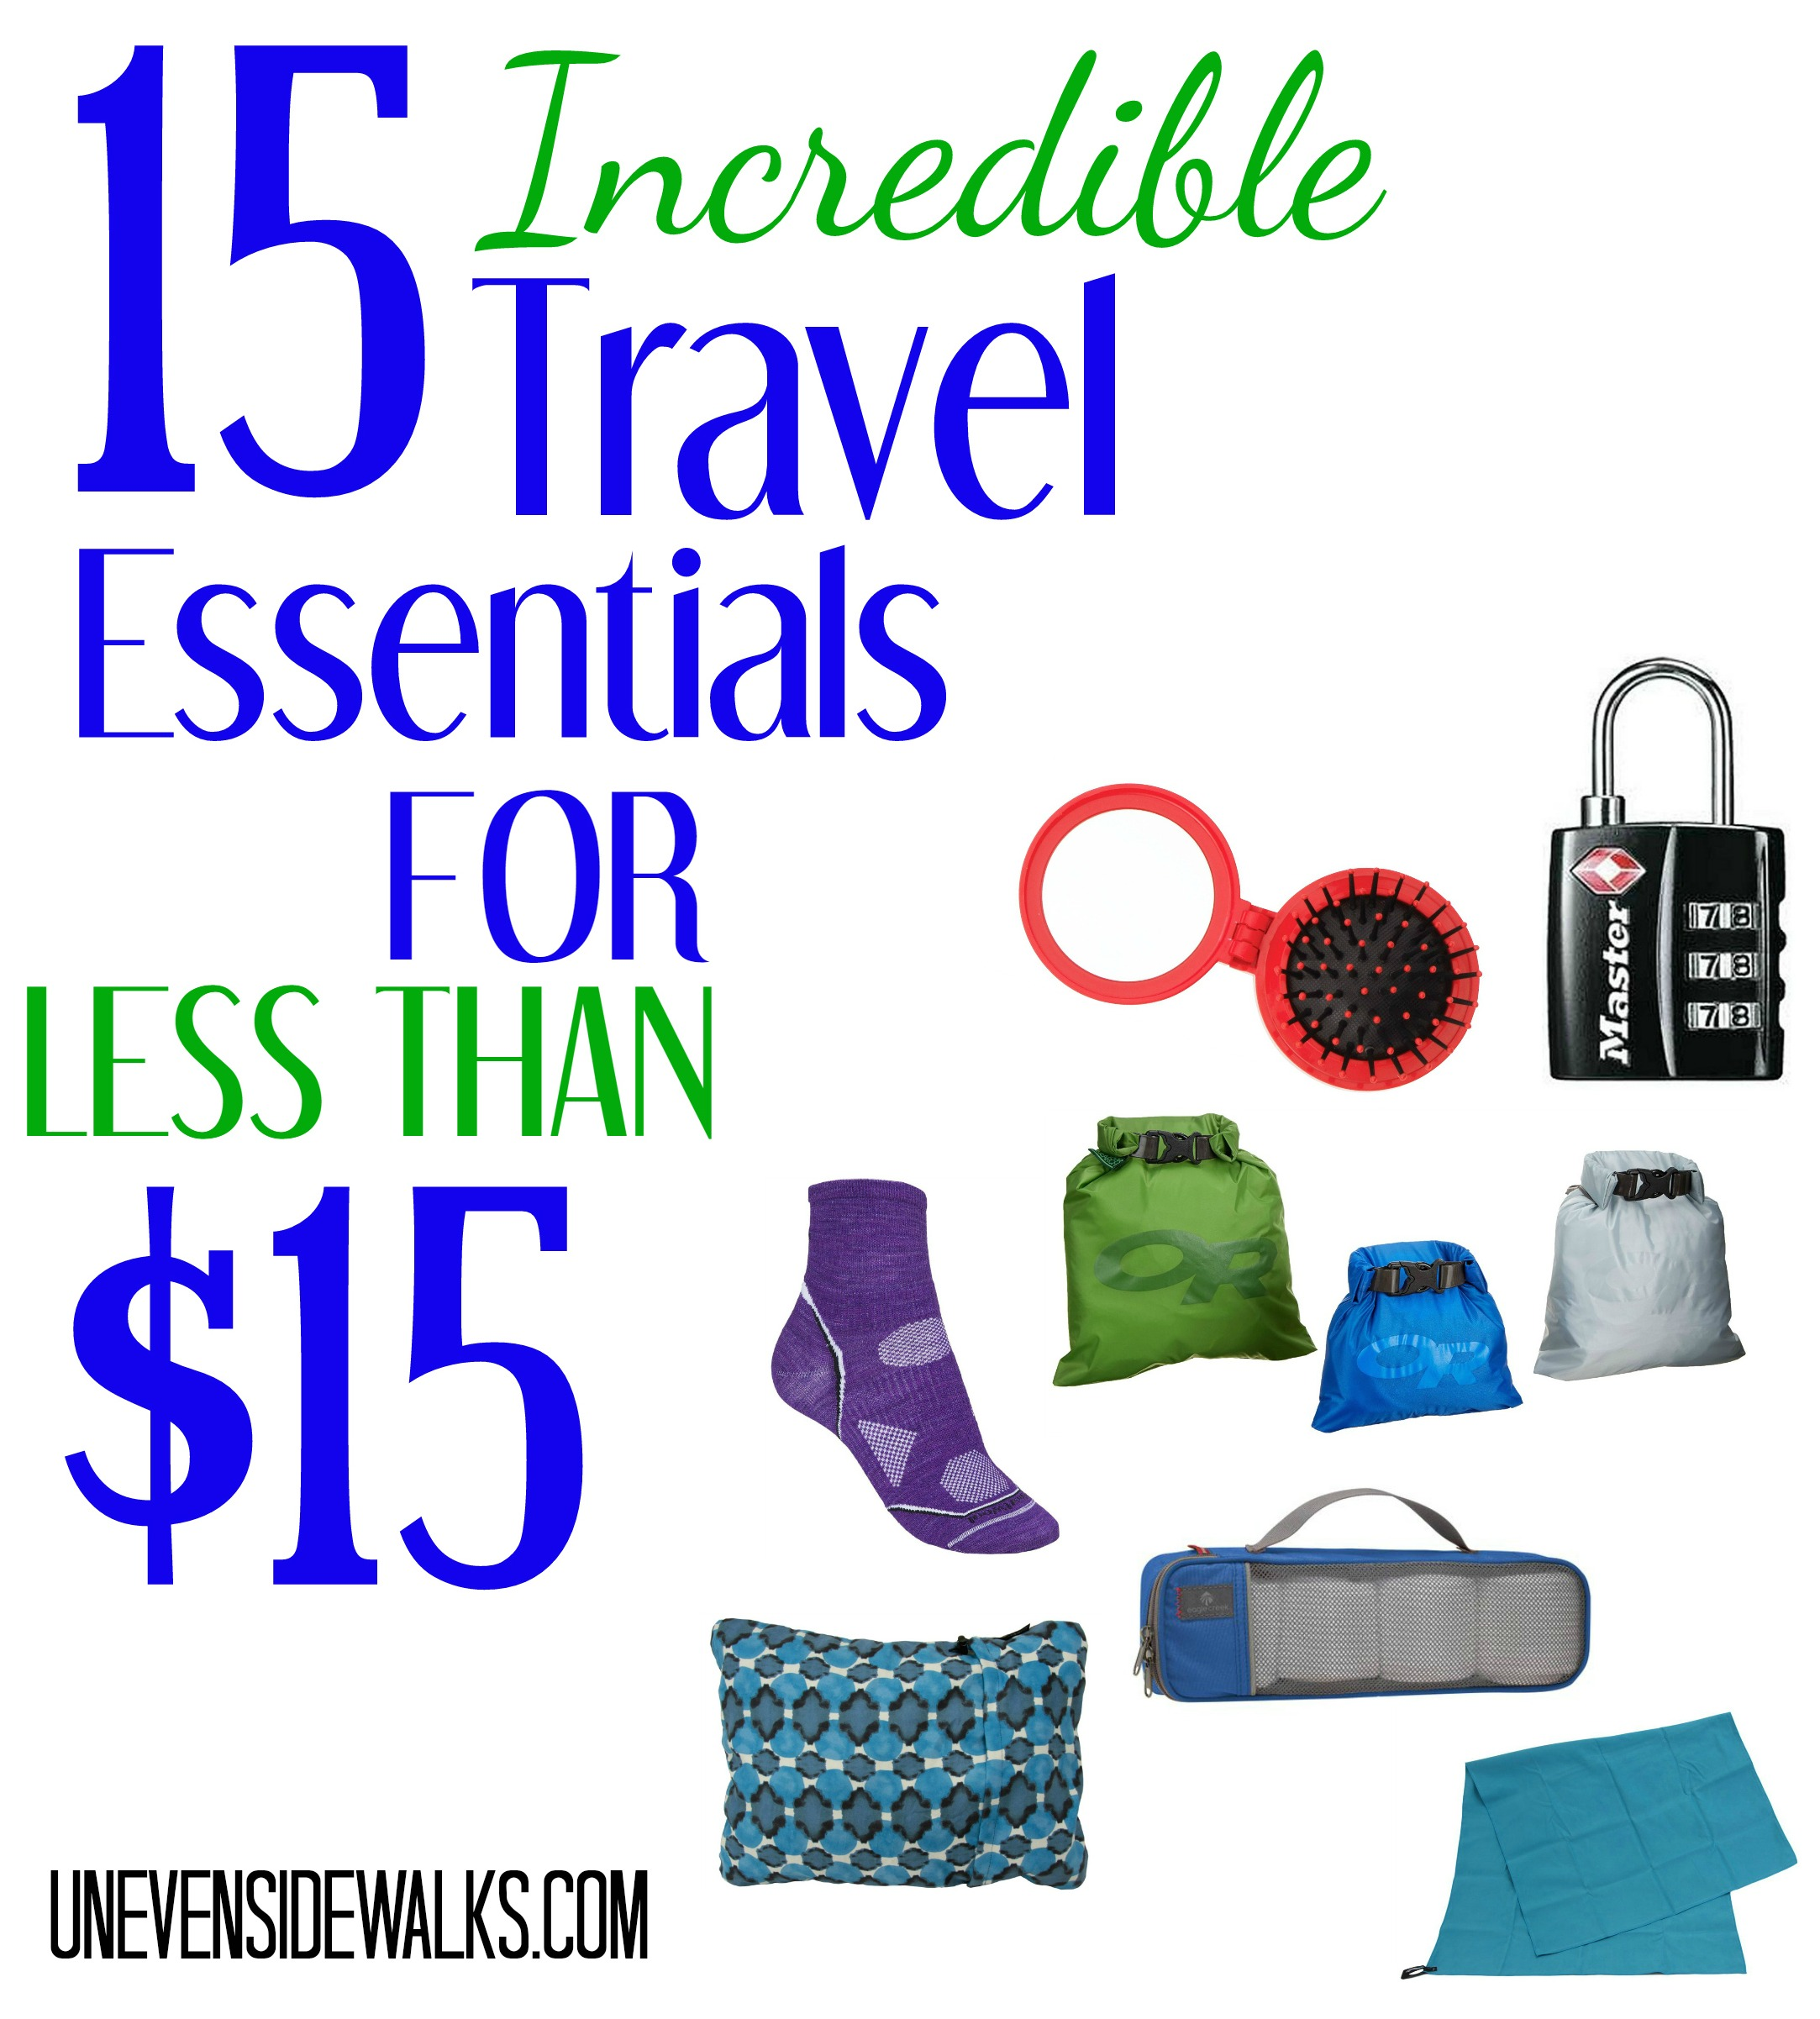 15 Incredible Travel Essentials for less than 15 Dollars | UnevenSidewalks